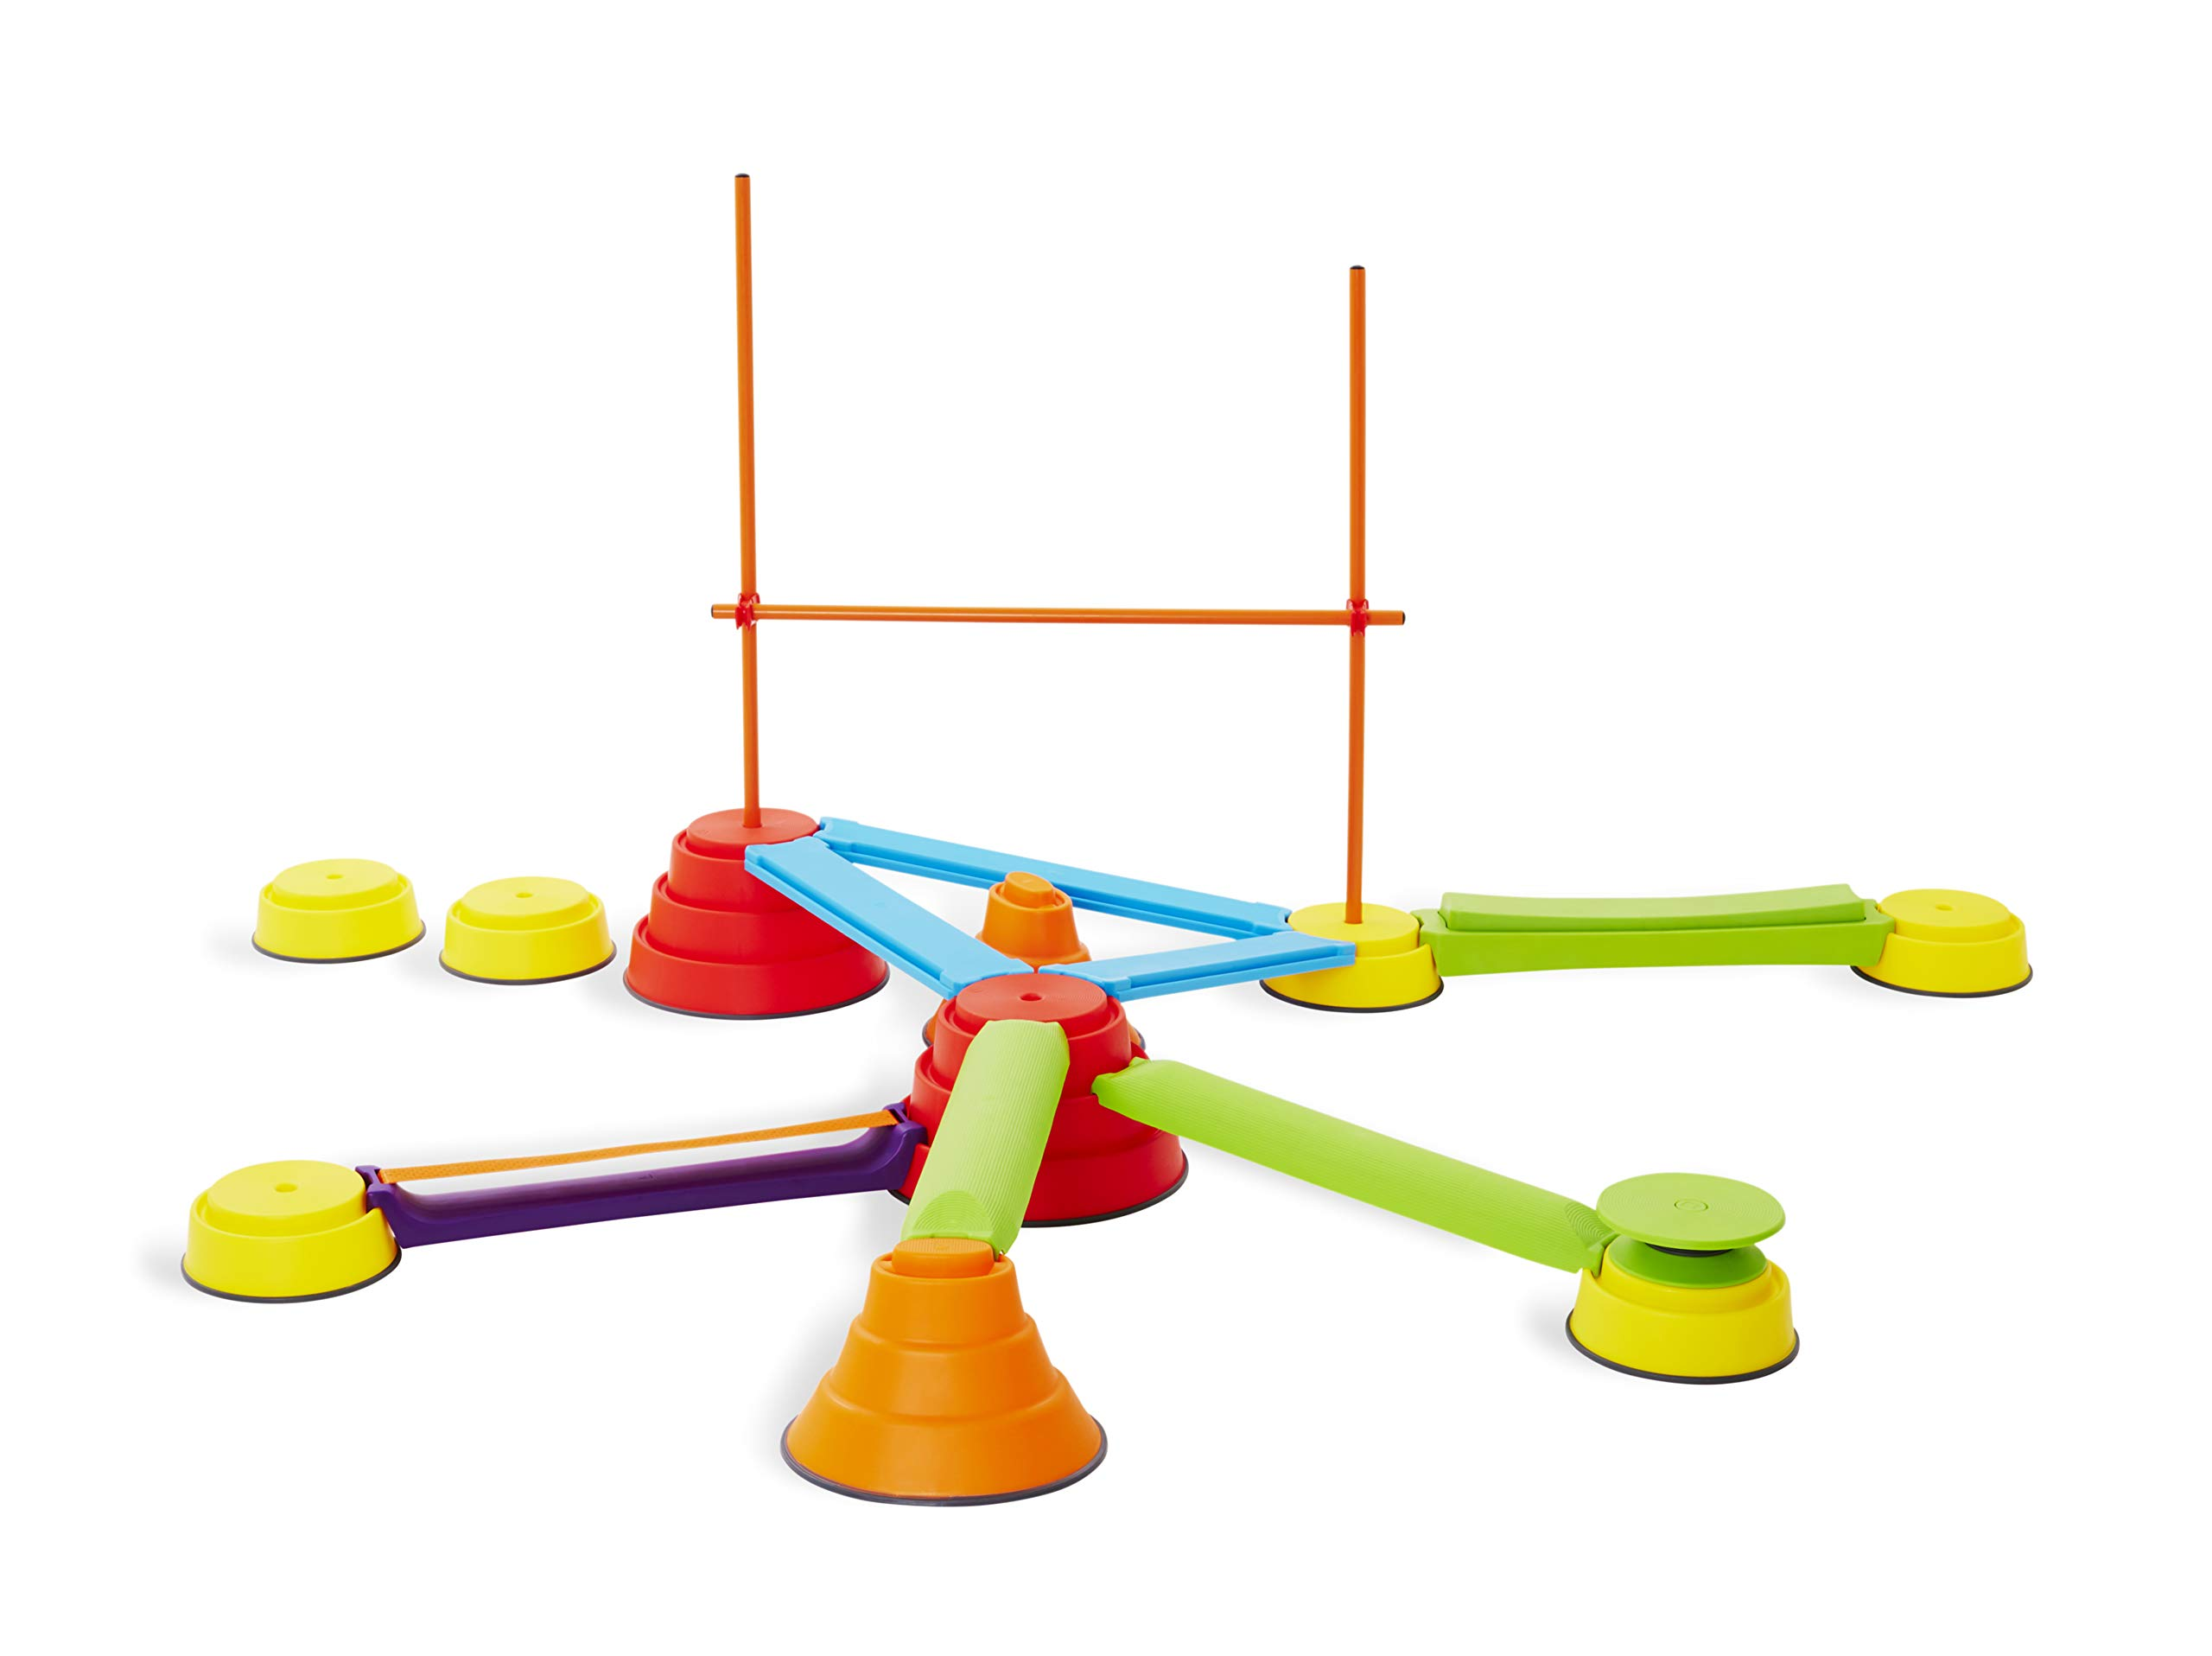 American Educational Products G-2239 Build 'n Balance Advanced Course Activity Set, 14.5'' Height, 14.5'' Wide, 14.5'' Length